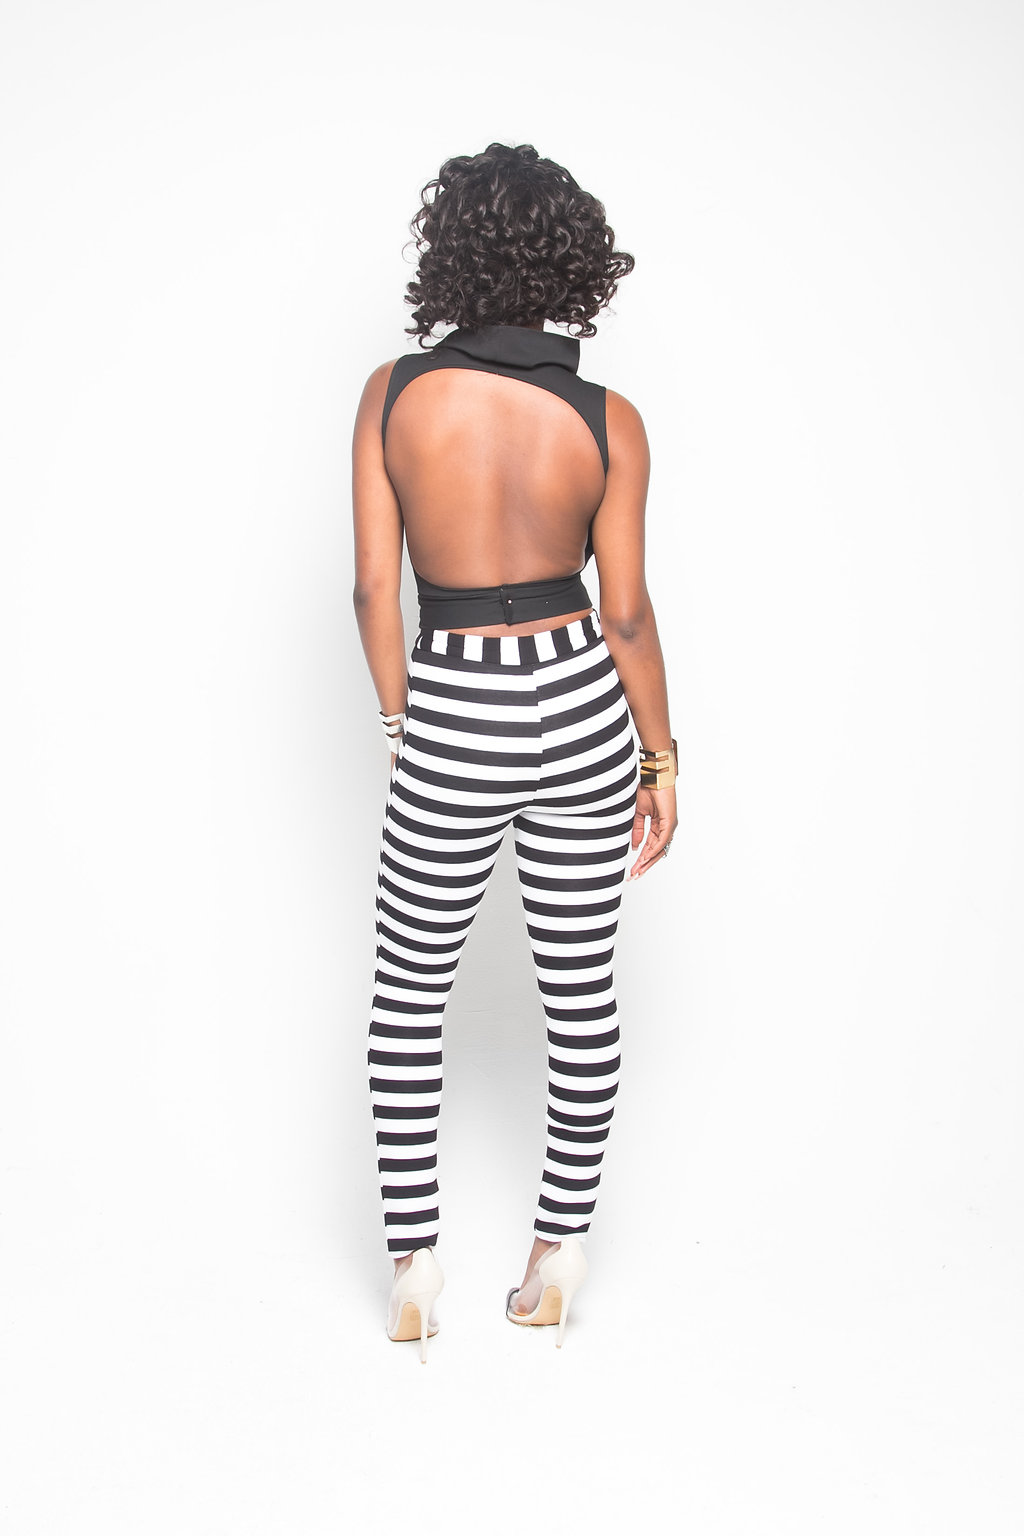 45ca5176a6759 Black and White Striped Pants (PRE-SALE) - Sylvia Mollie Collection